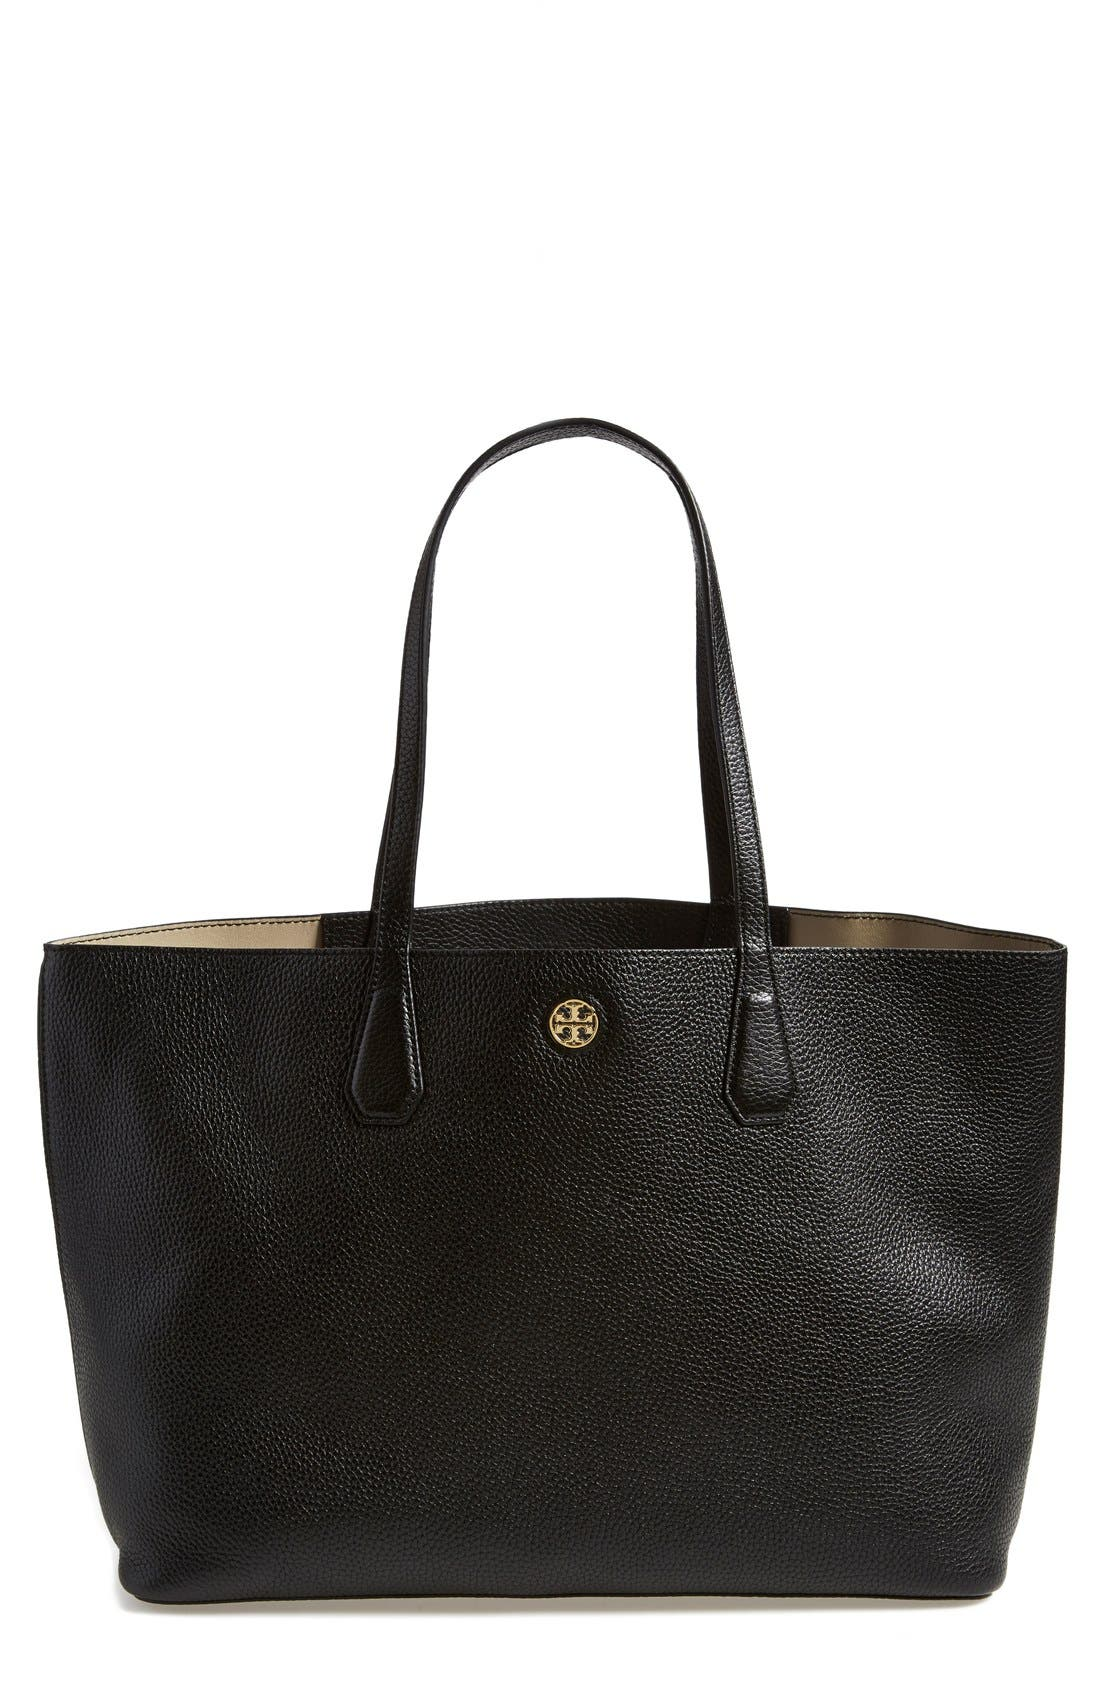 Alternate Image 1 Selected - Tory Burch 'Perry' Leather Tote